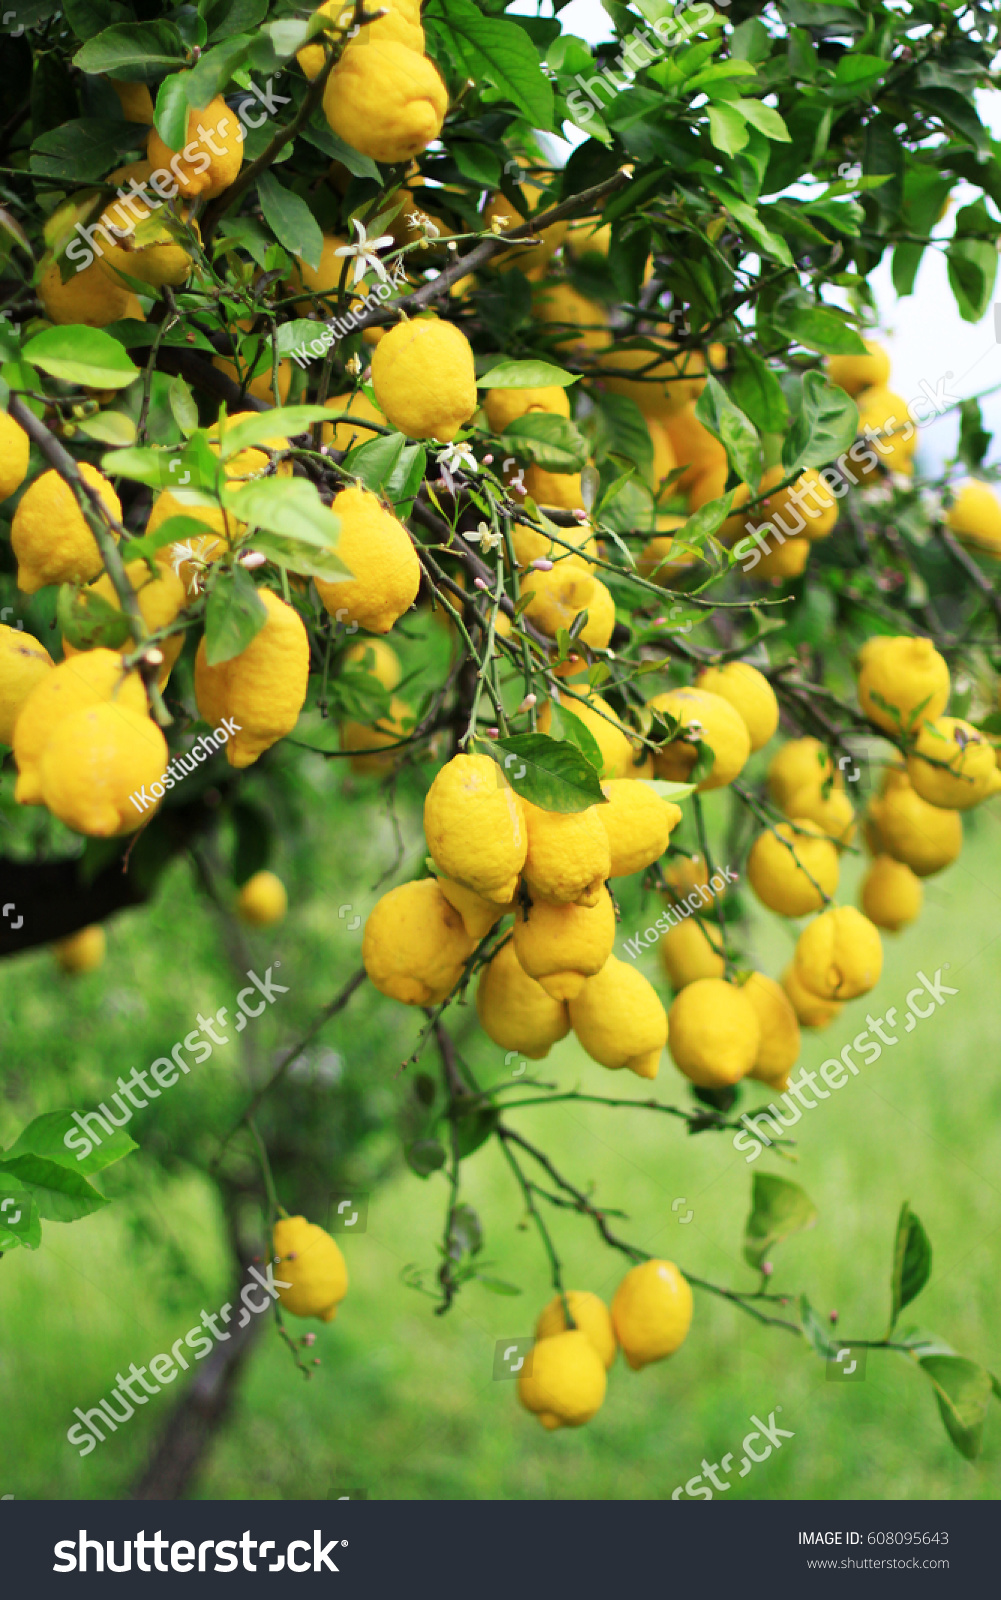 Big yellow lemons on green tree stock photo royalty free 608095643 big yellow lemons on green tree stock photo royalty free 608095643 shutterstock mightylinksfo